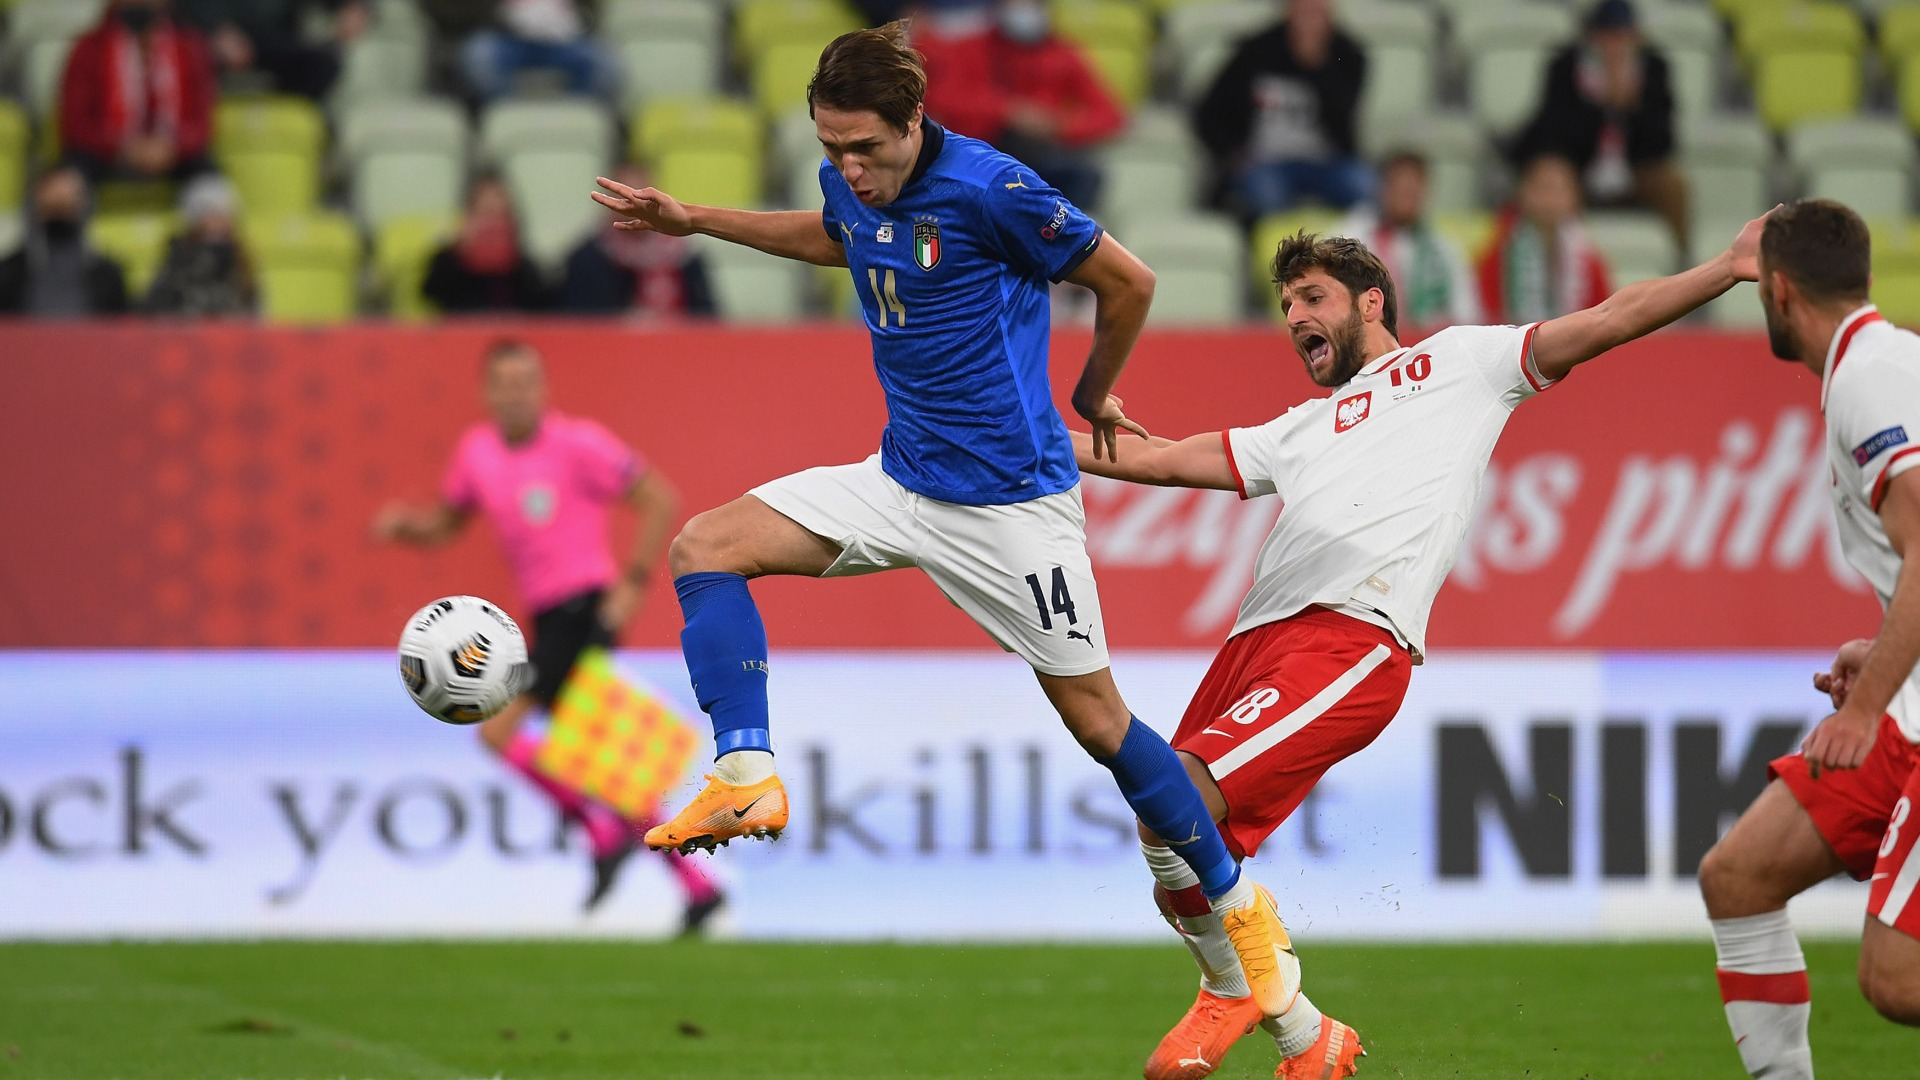 Poland 0-0 Italy: Poor finishing to blame as Azzurri are held